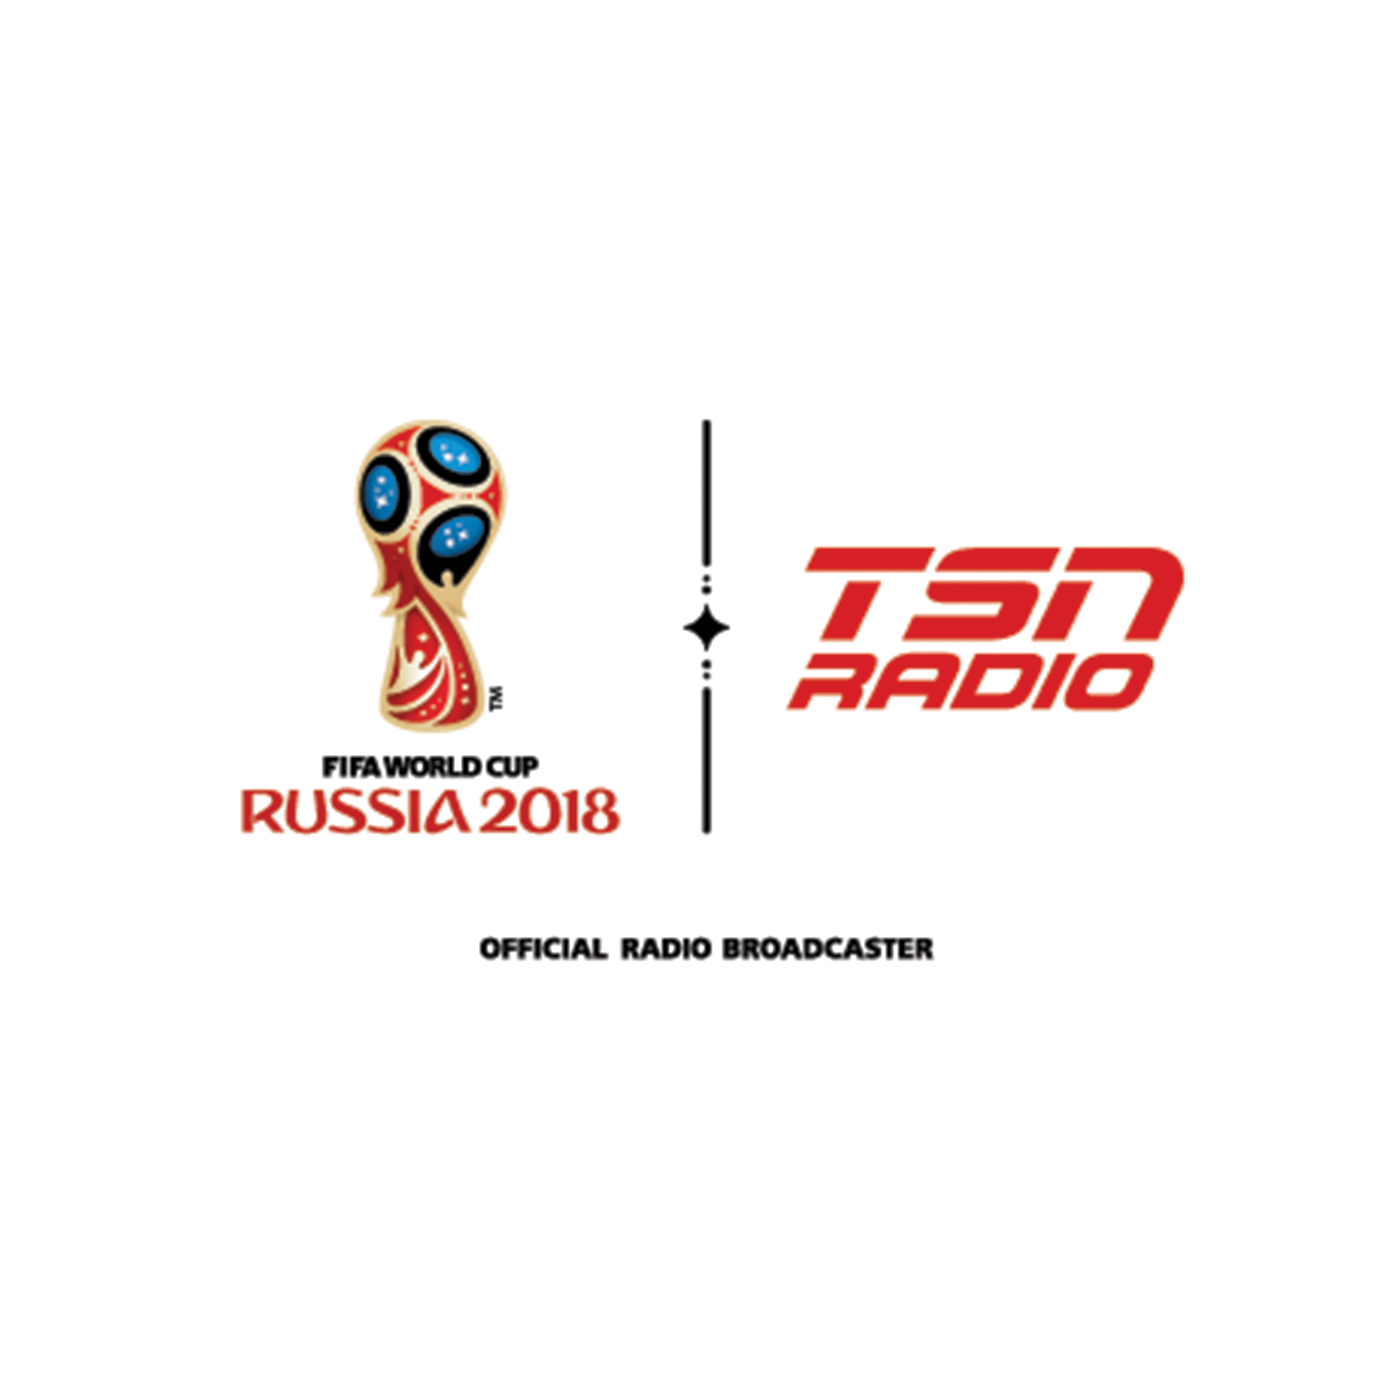 World Cup Daily Podcast - Listen, Reviews, Charts - Chartable